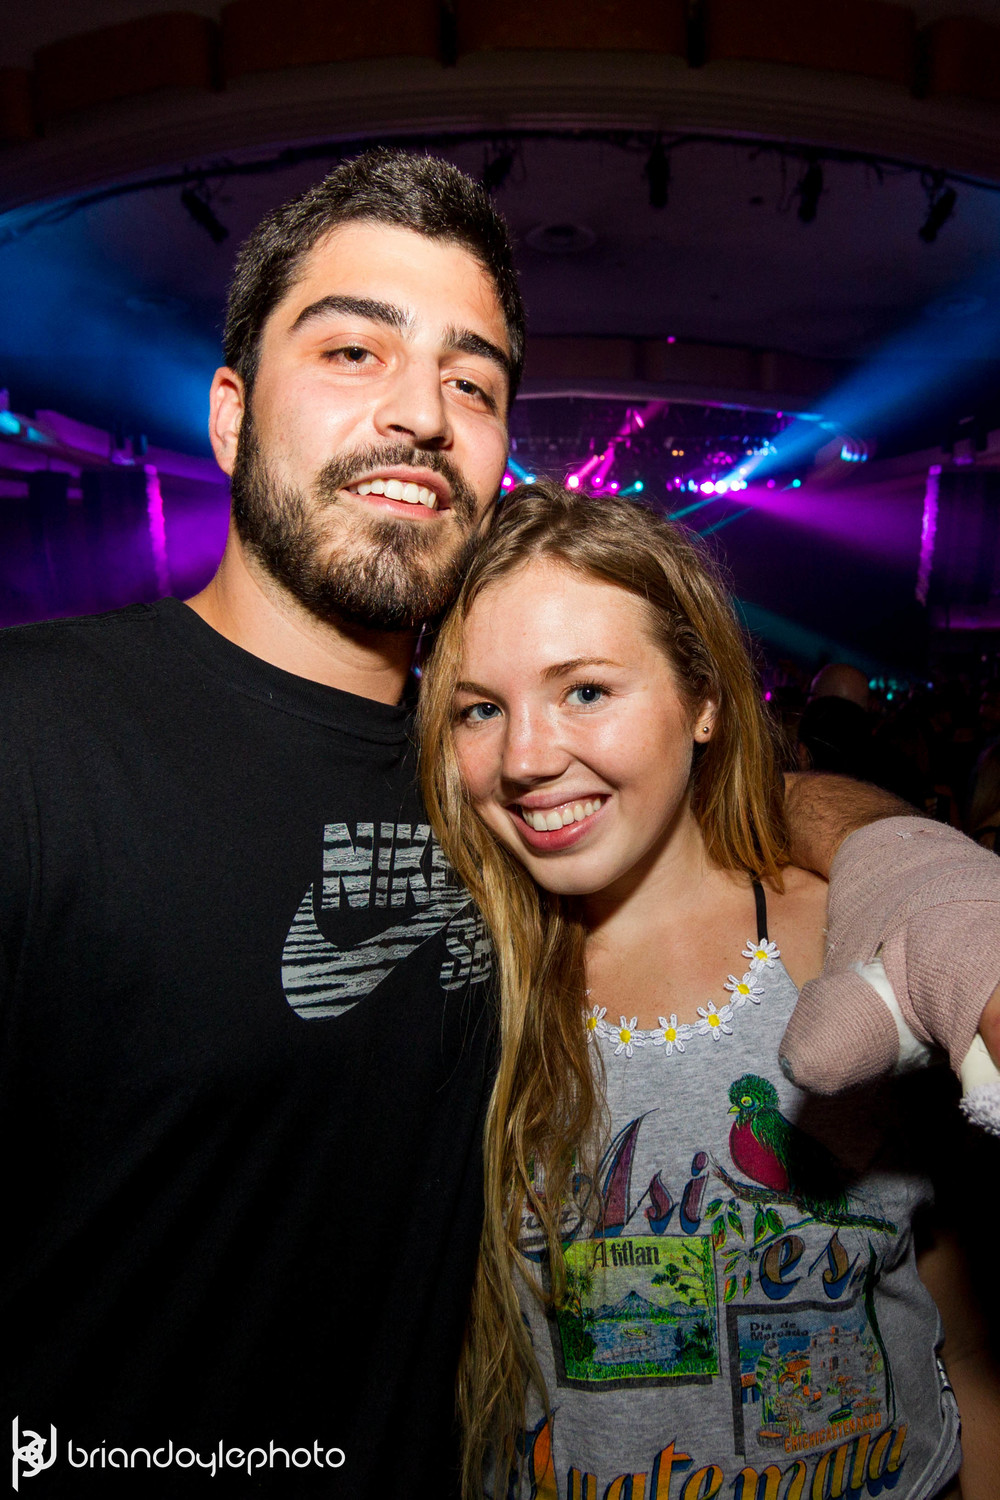 Safe in Sound @ Pavillion bdp 18.10.2014-30.jpg